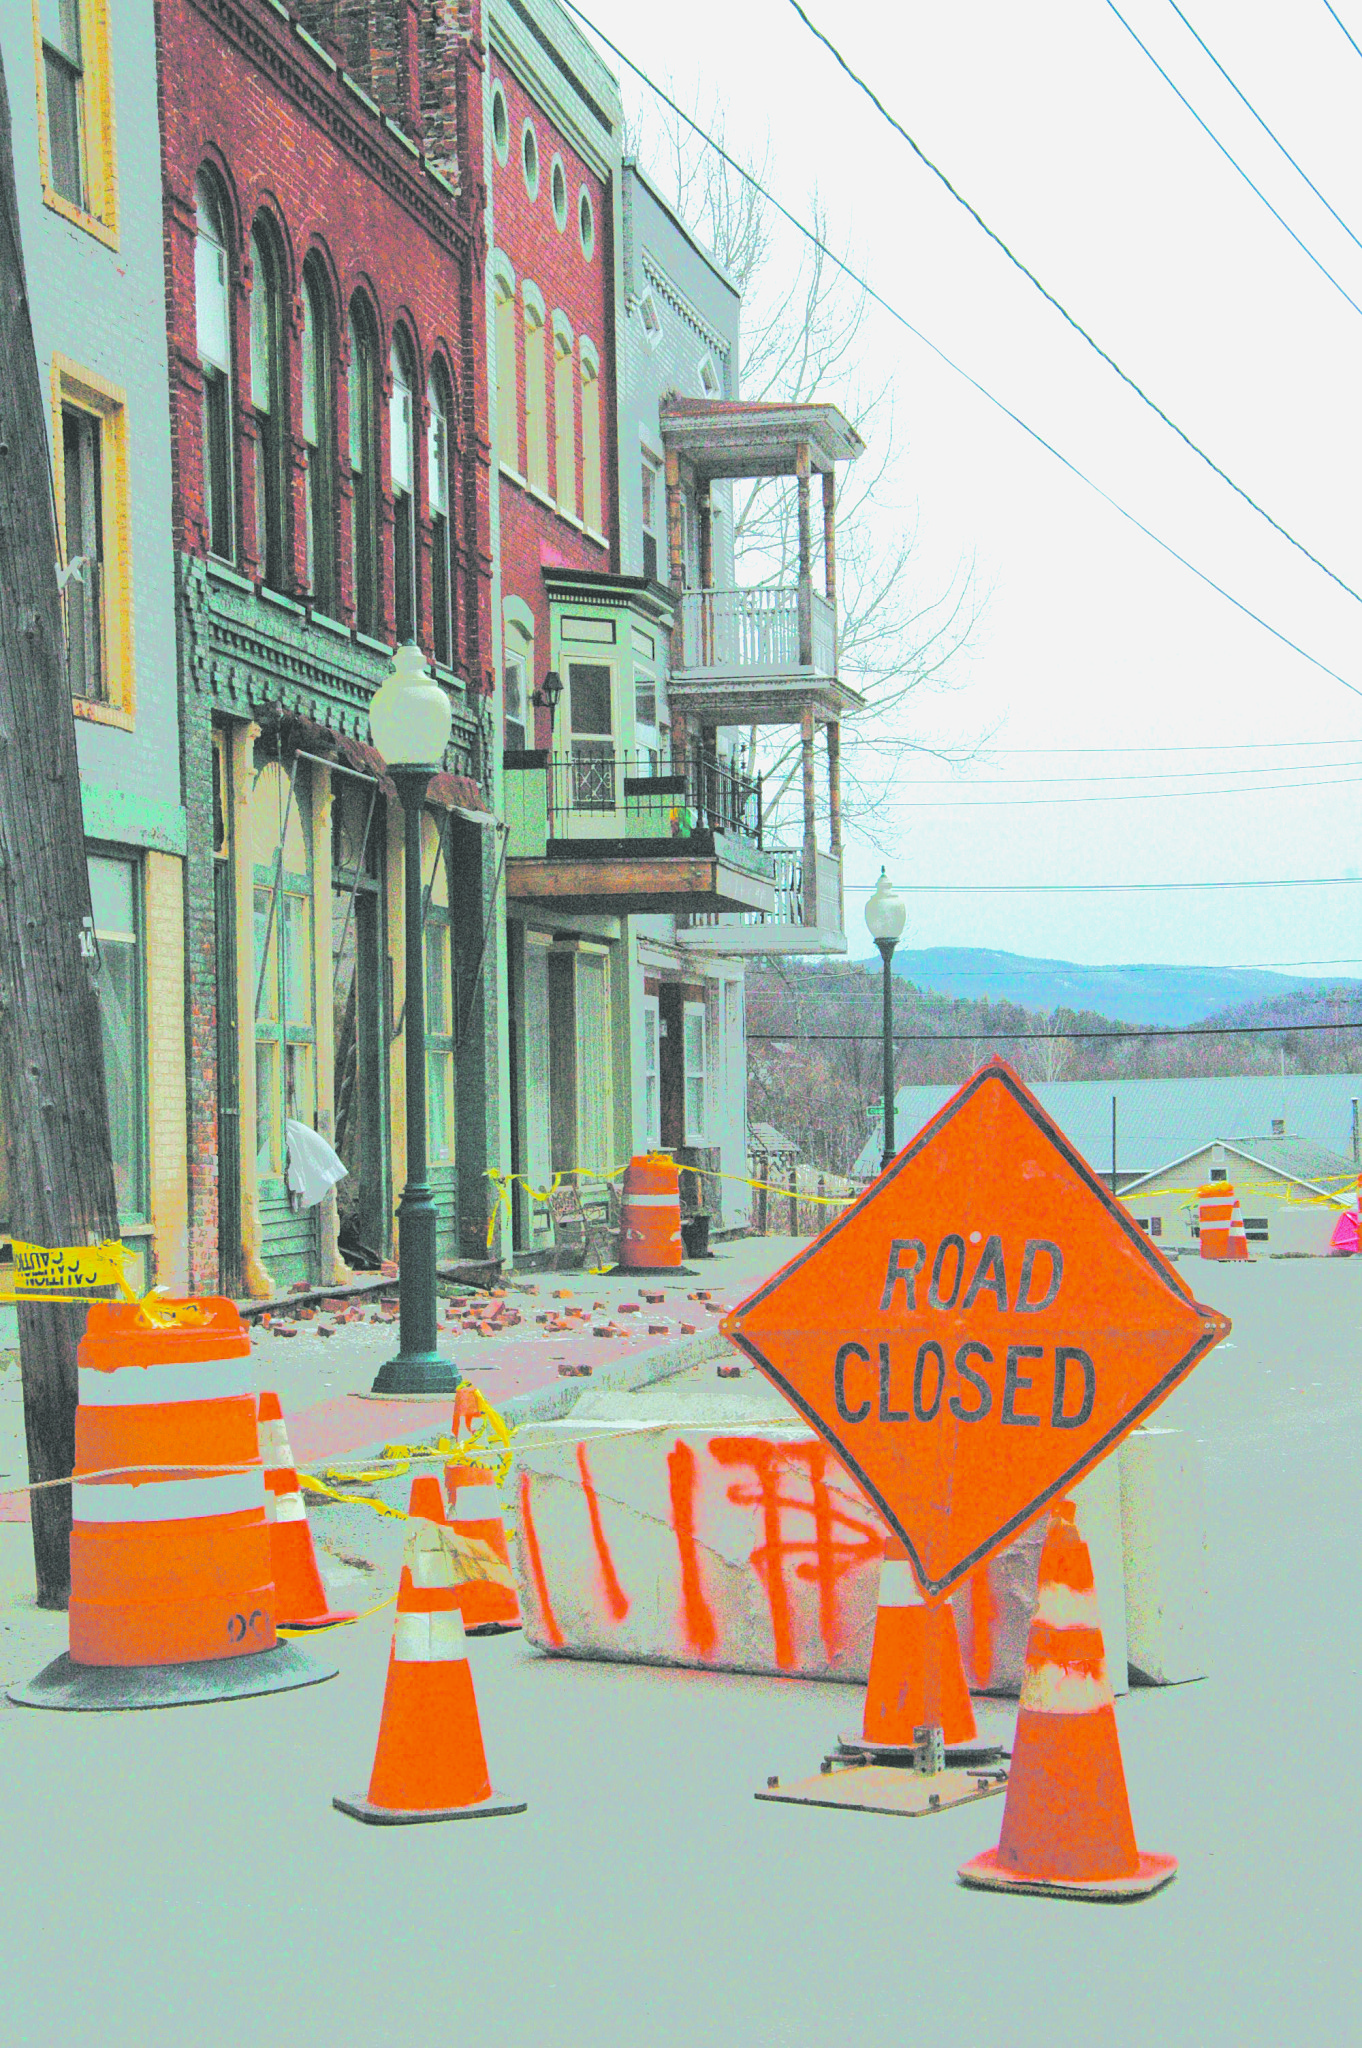 Unsafe building closes portion of Main Street